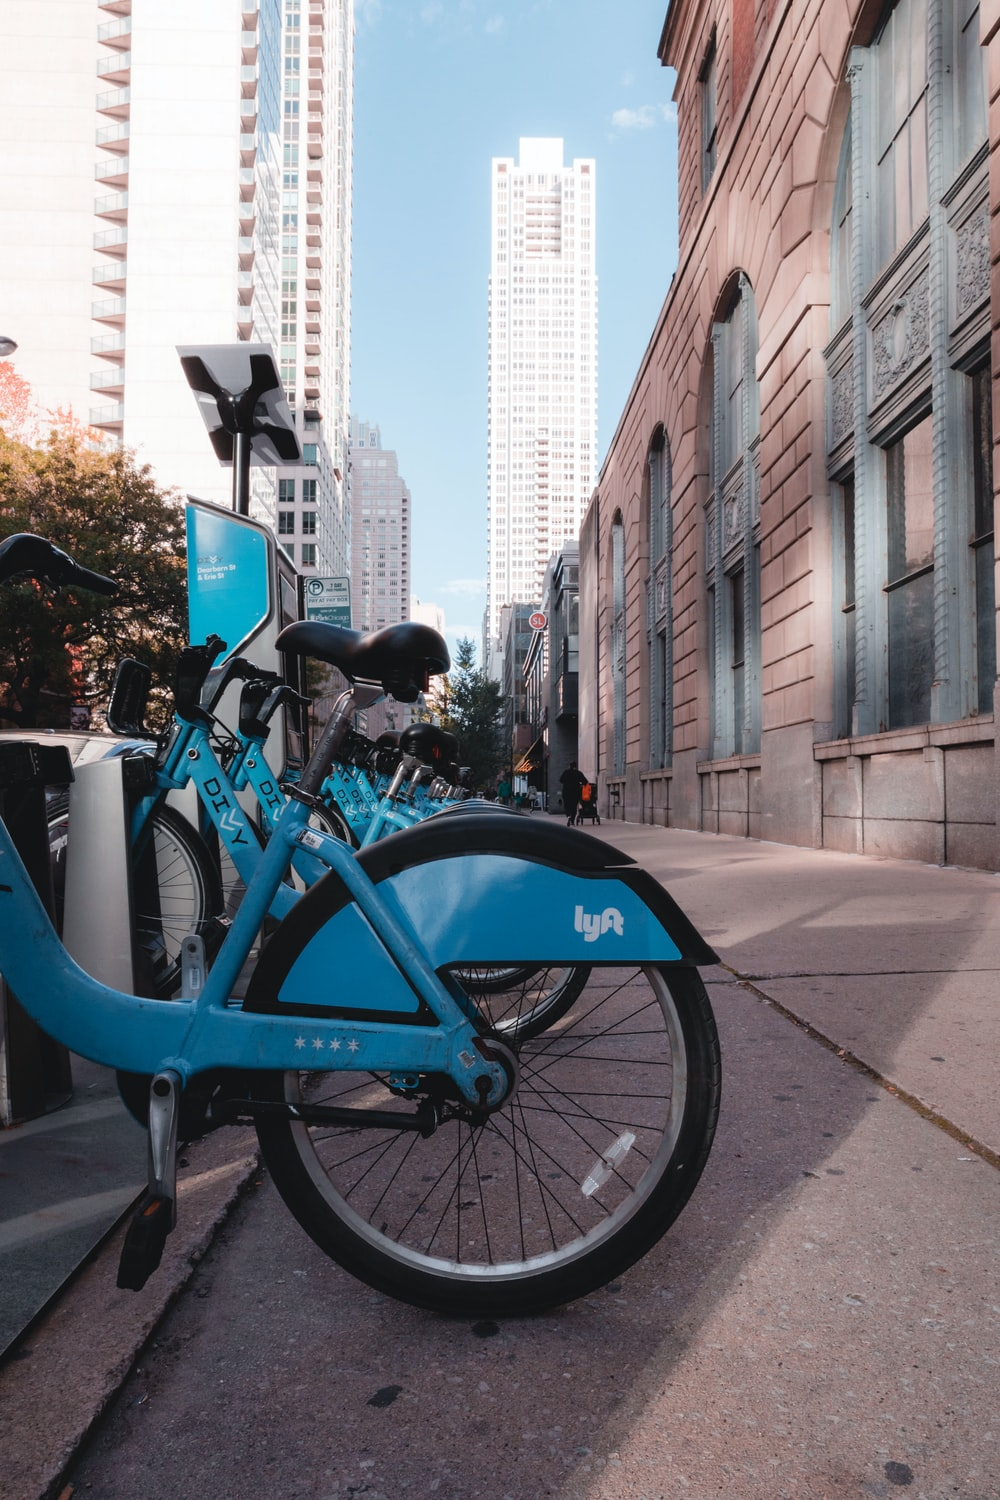 blue bikes parking near buildings during daytime